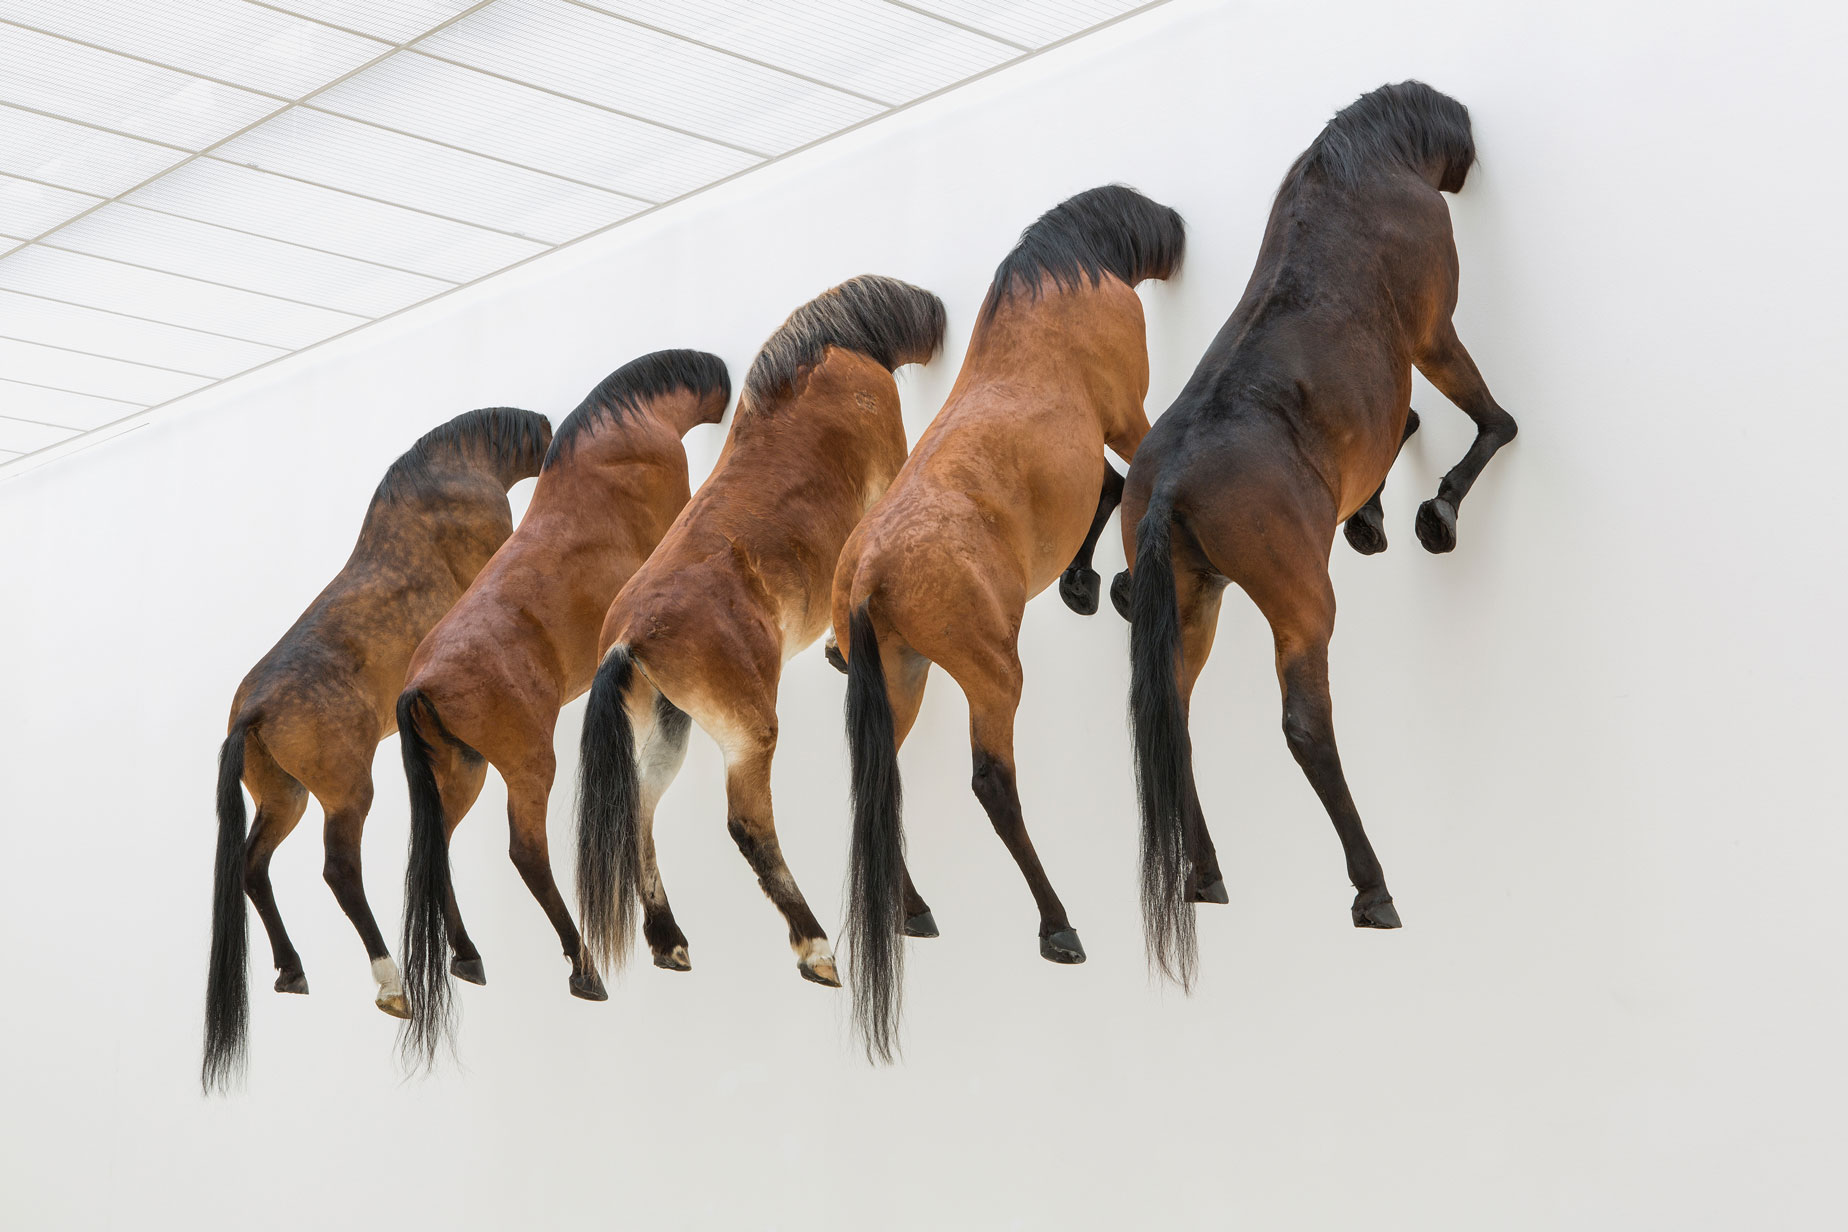 Maurizio cattelan  untitled  2007  taxidermied horses  installation view of kaputt  fondation beyeler